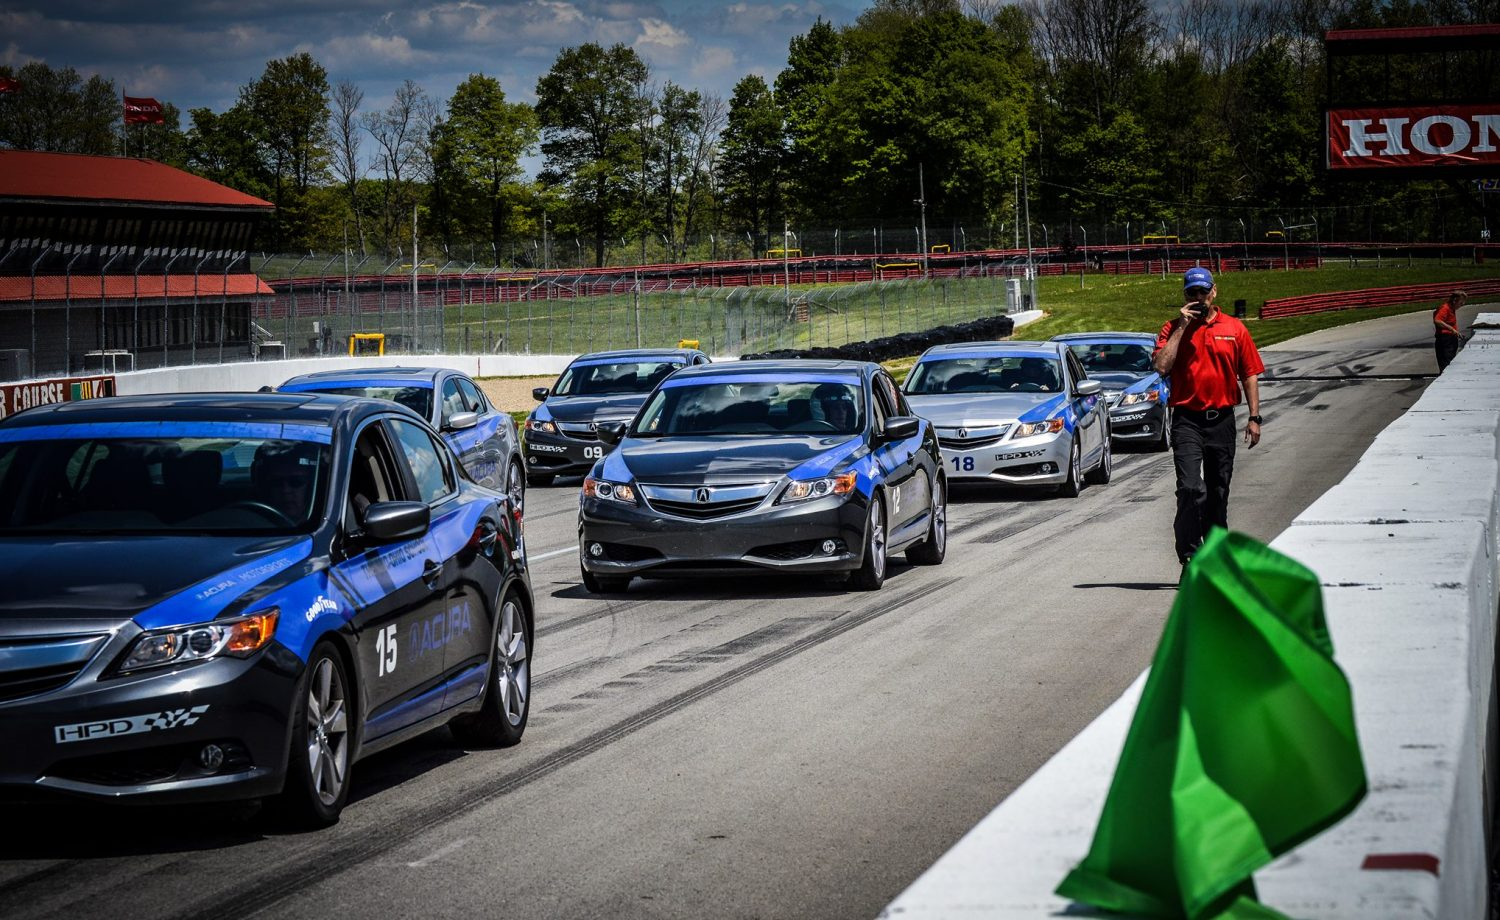 The Mid-Ohio School at the Mid-Ohio Sports Car Course